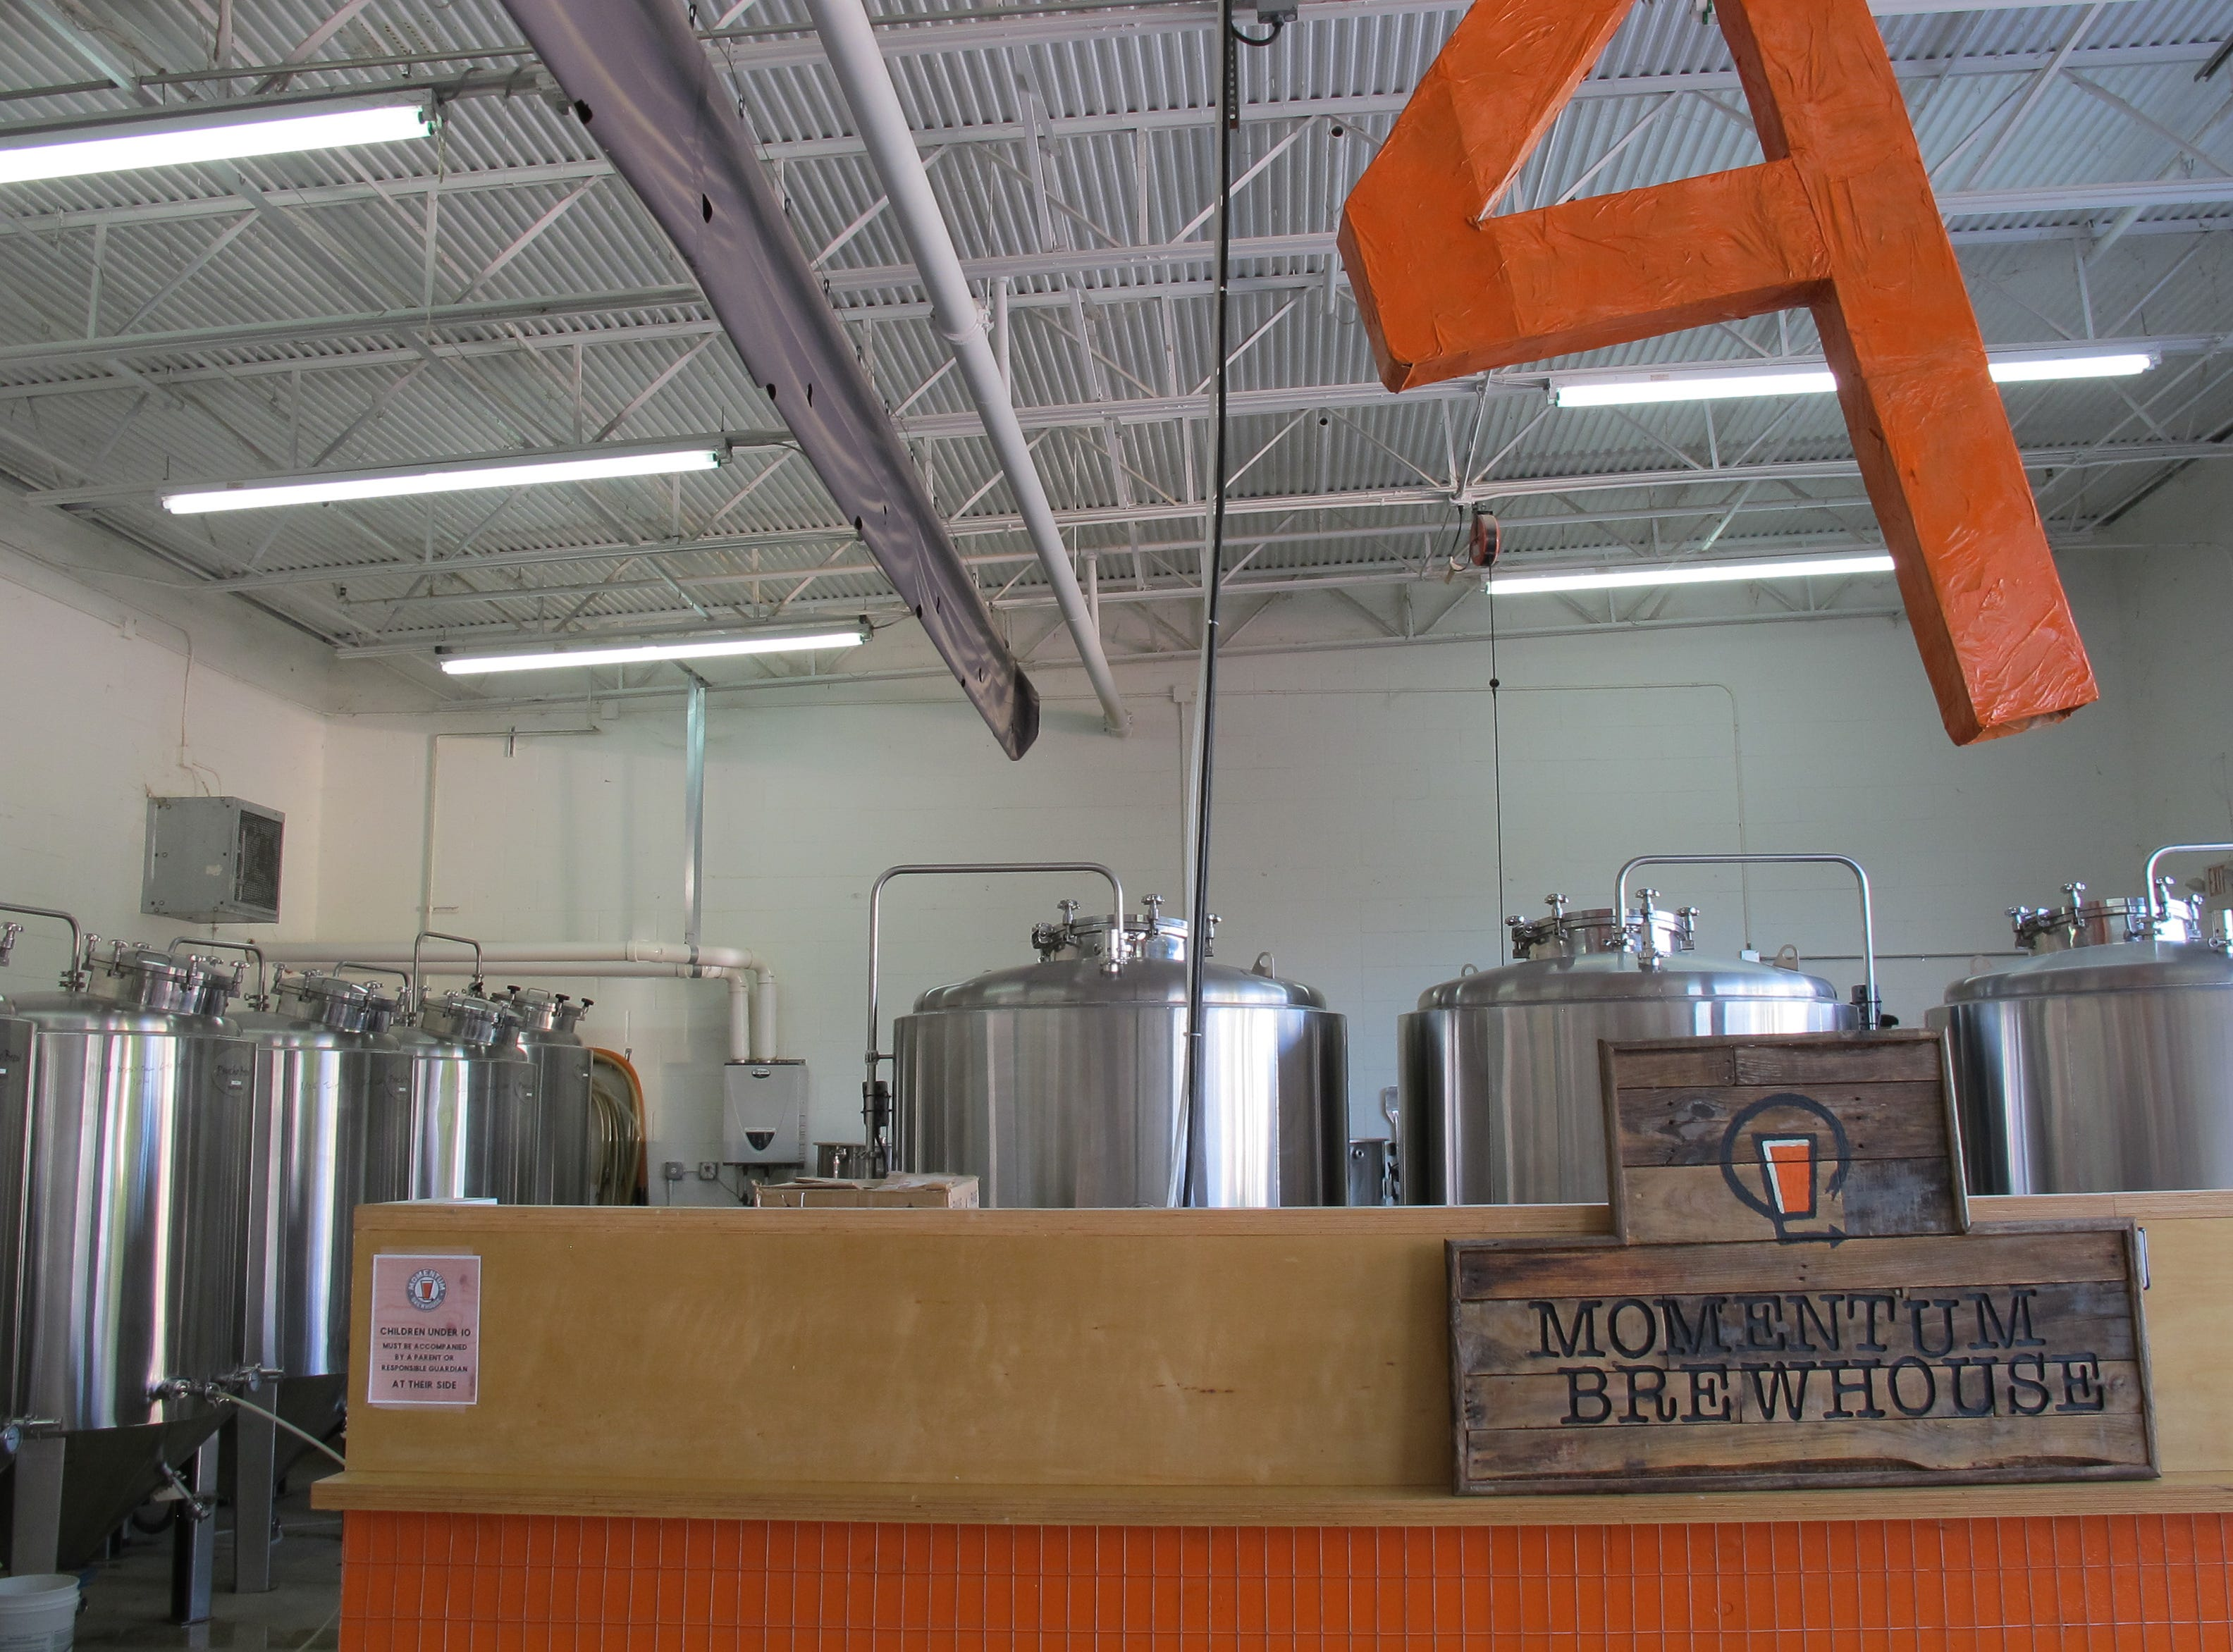 Four-year-old Momentum Brewhouse in Bonita Springs has a five-barrel system for brewing craft beers.